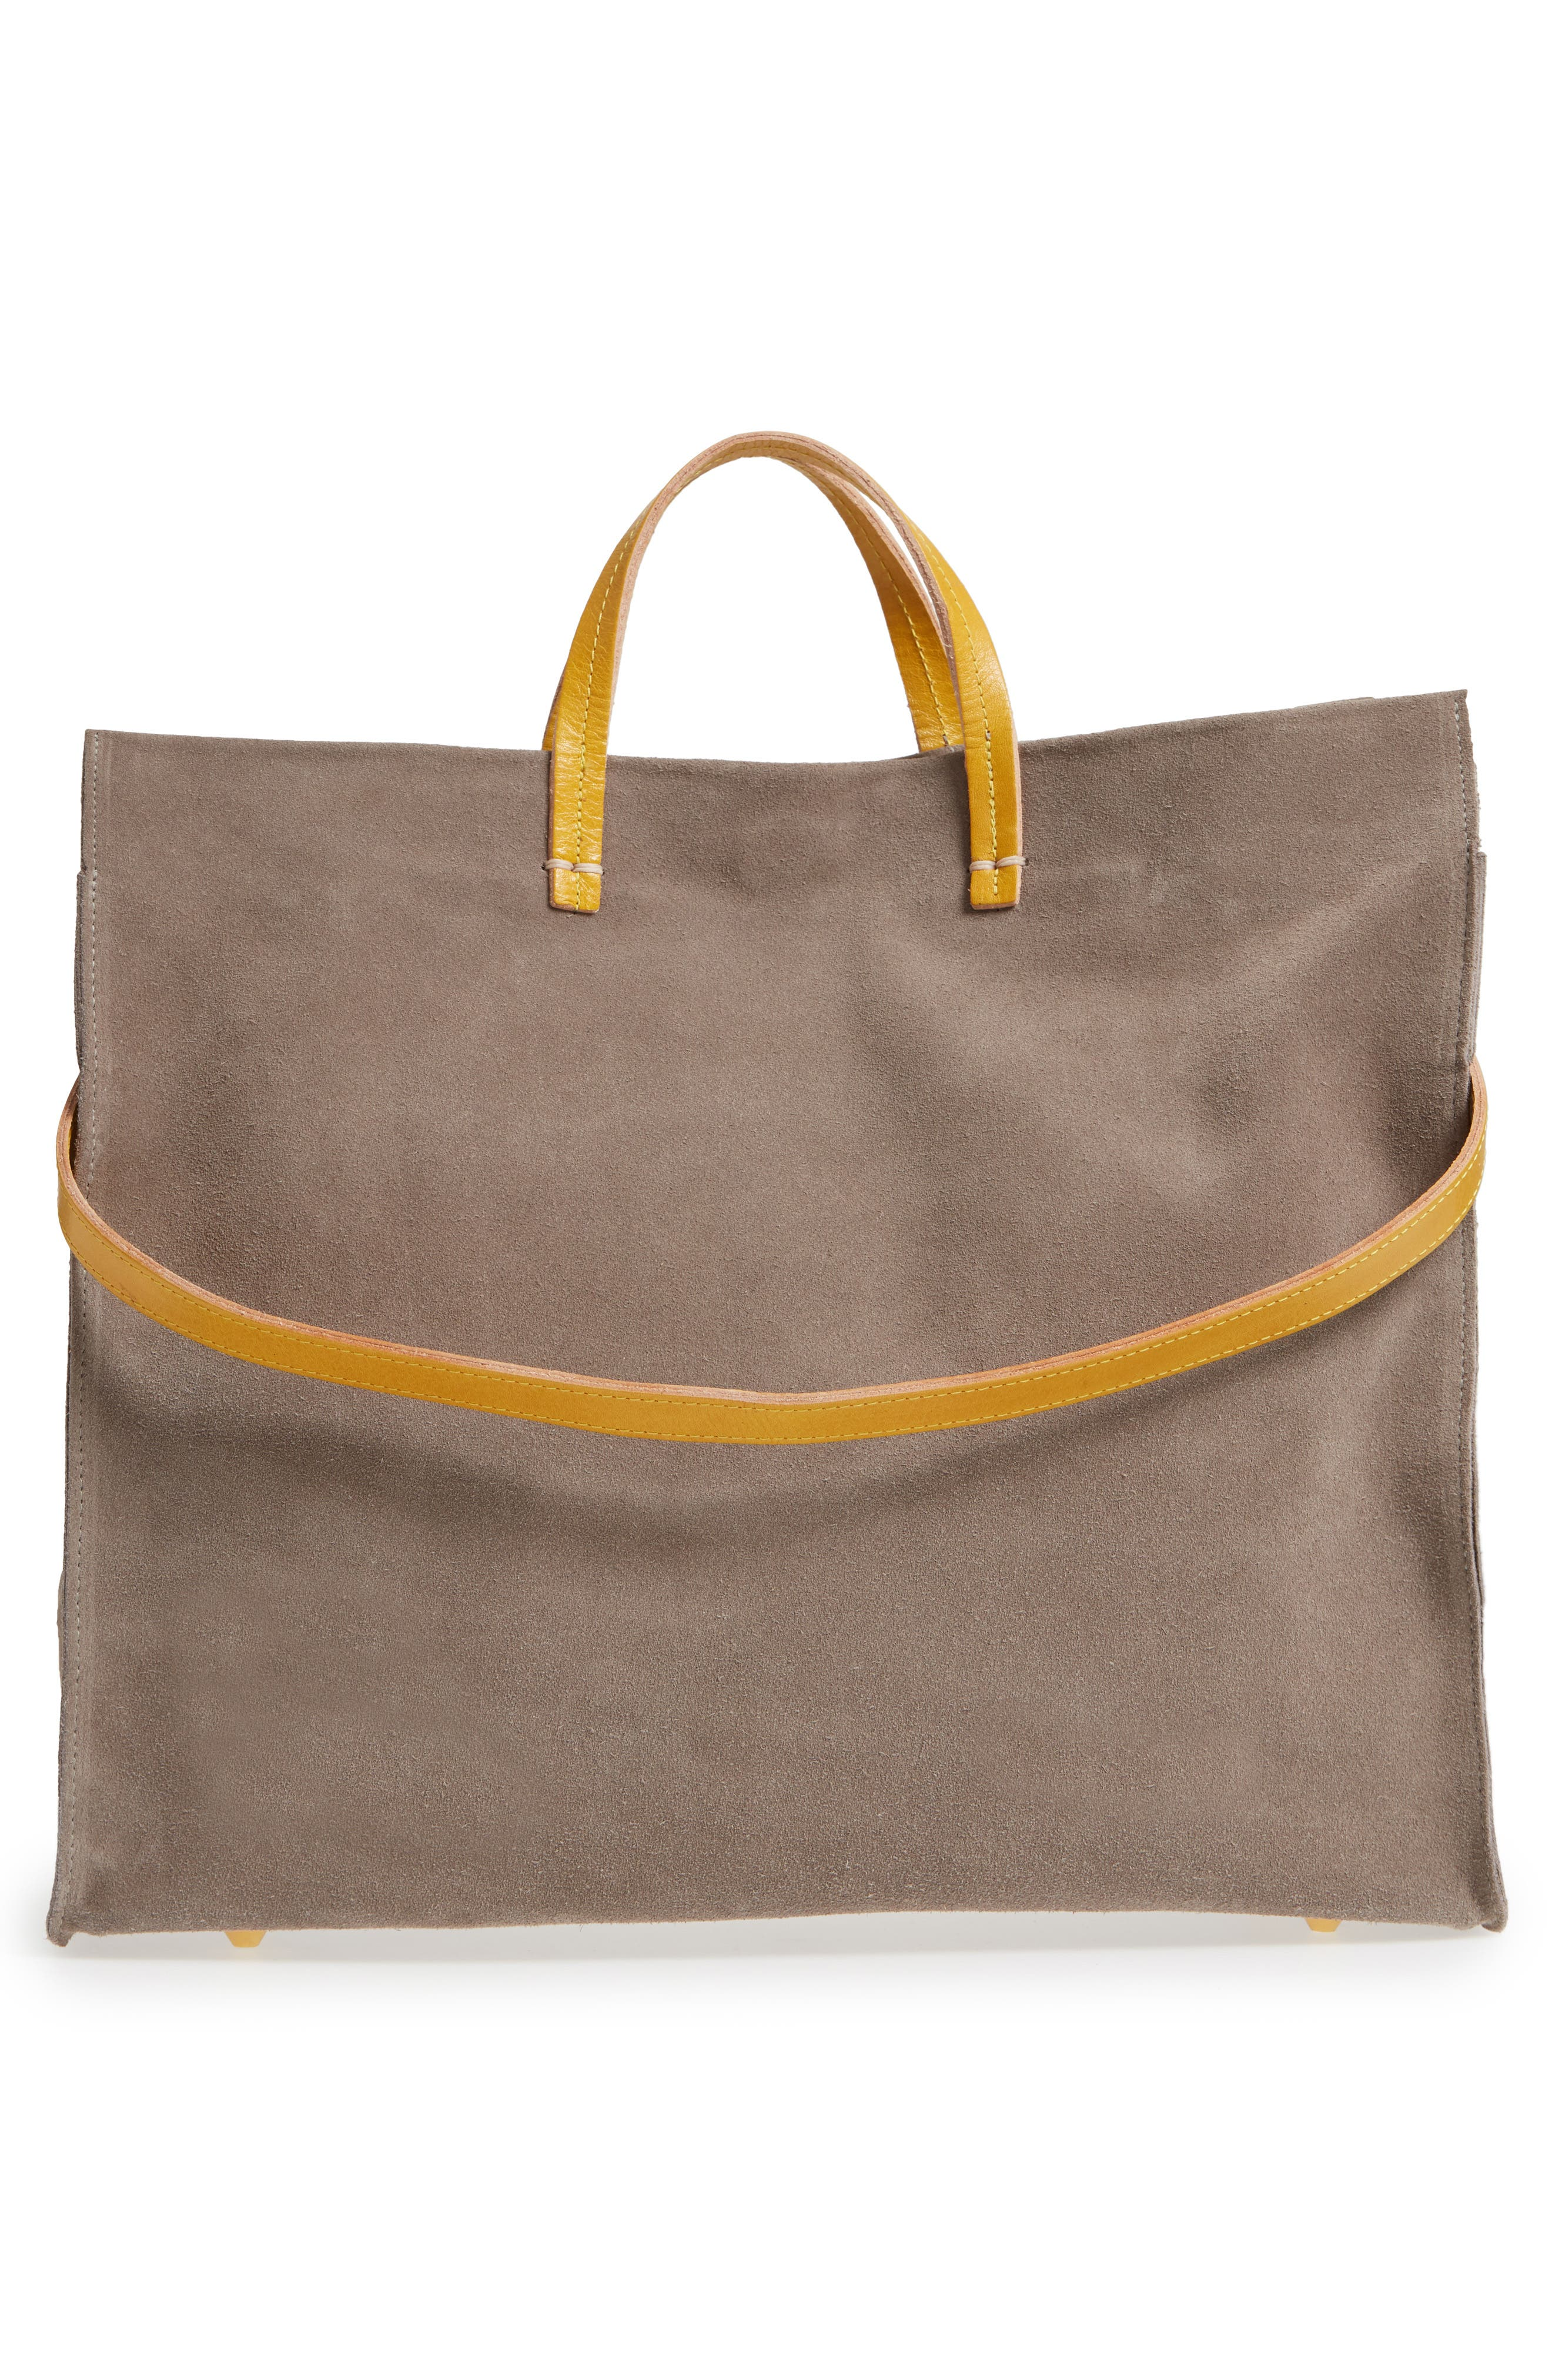 Simple Suede Tote,                             Alternate thumbnail 3, color,                             TAUPE/ YELLOW RUSTIC